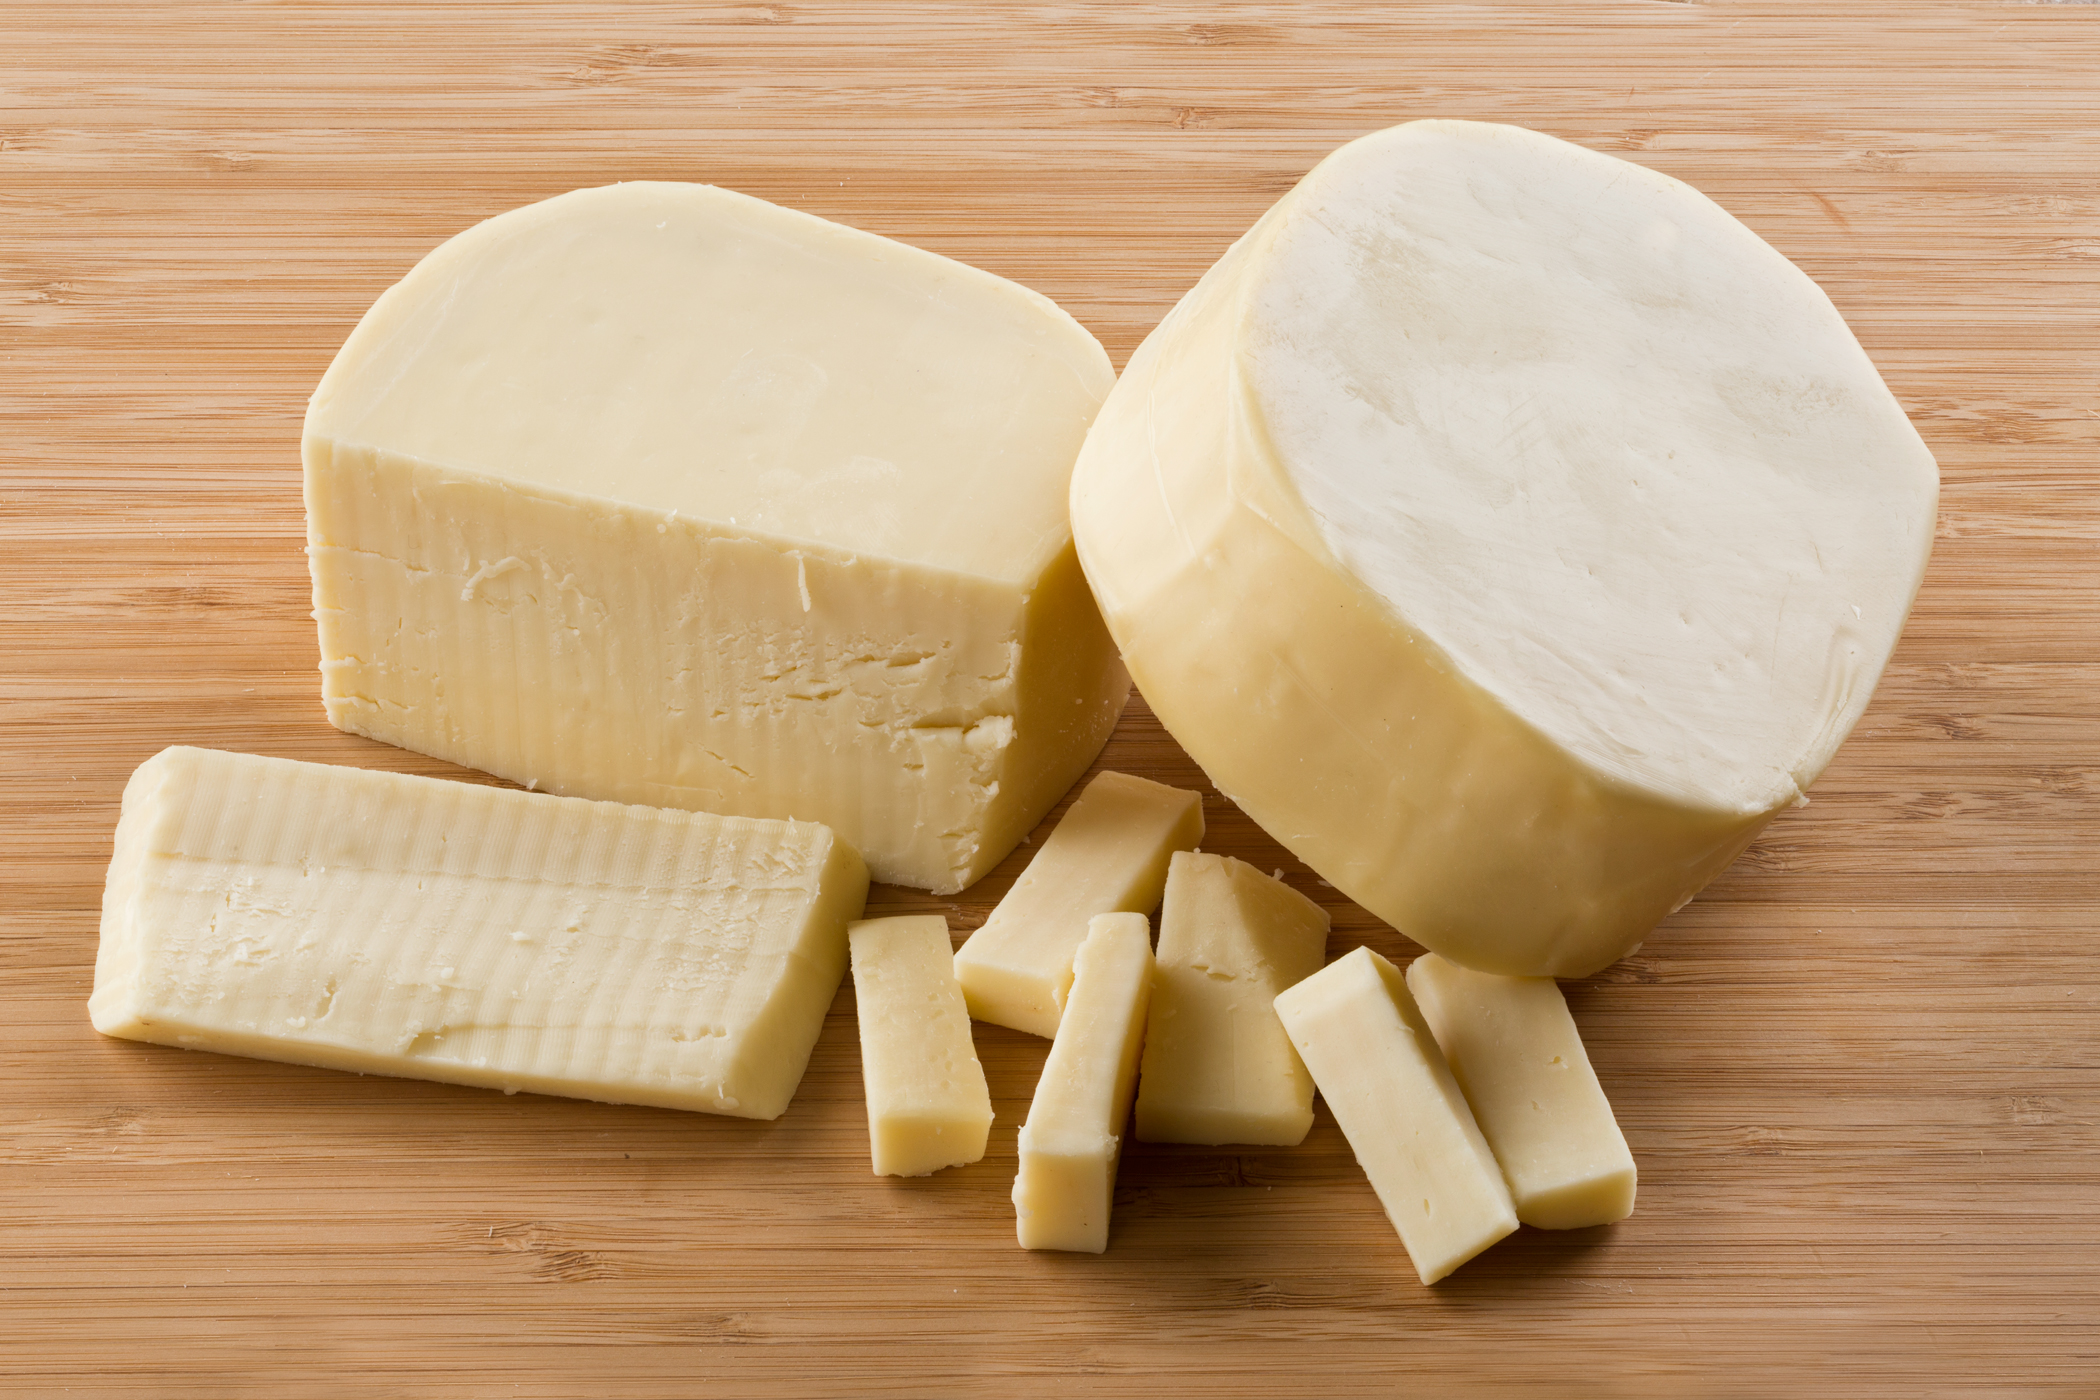 Naturally Smoked Provolone | Buy Wholesale Cheese Online ...